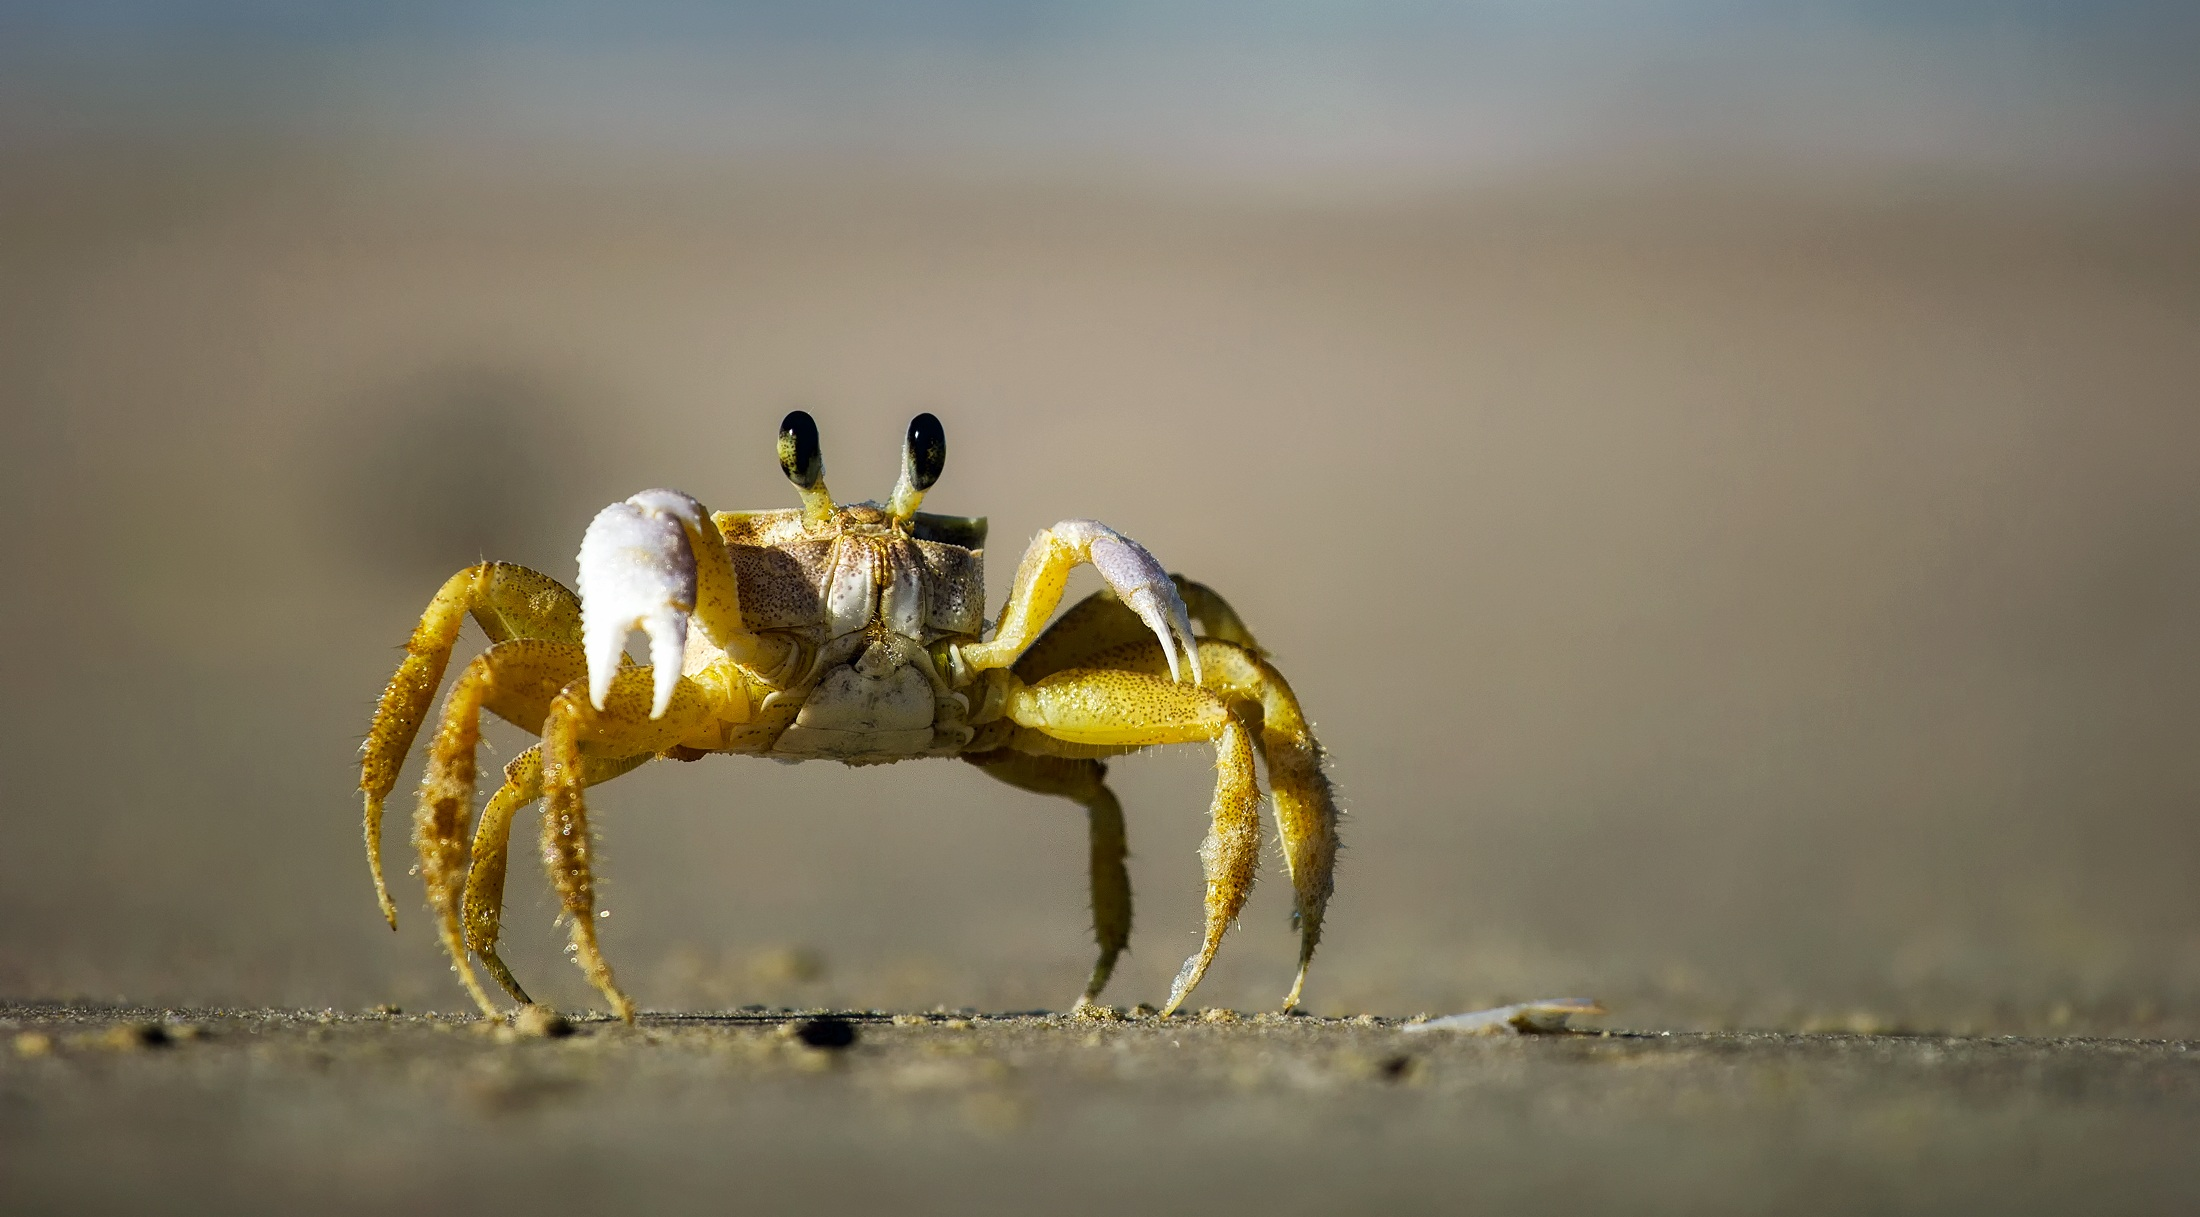 Crab ready to fight photo